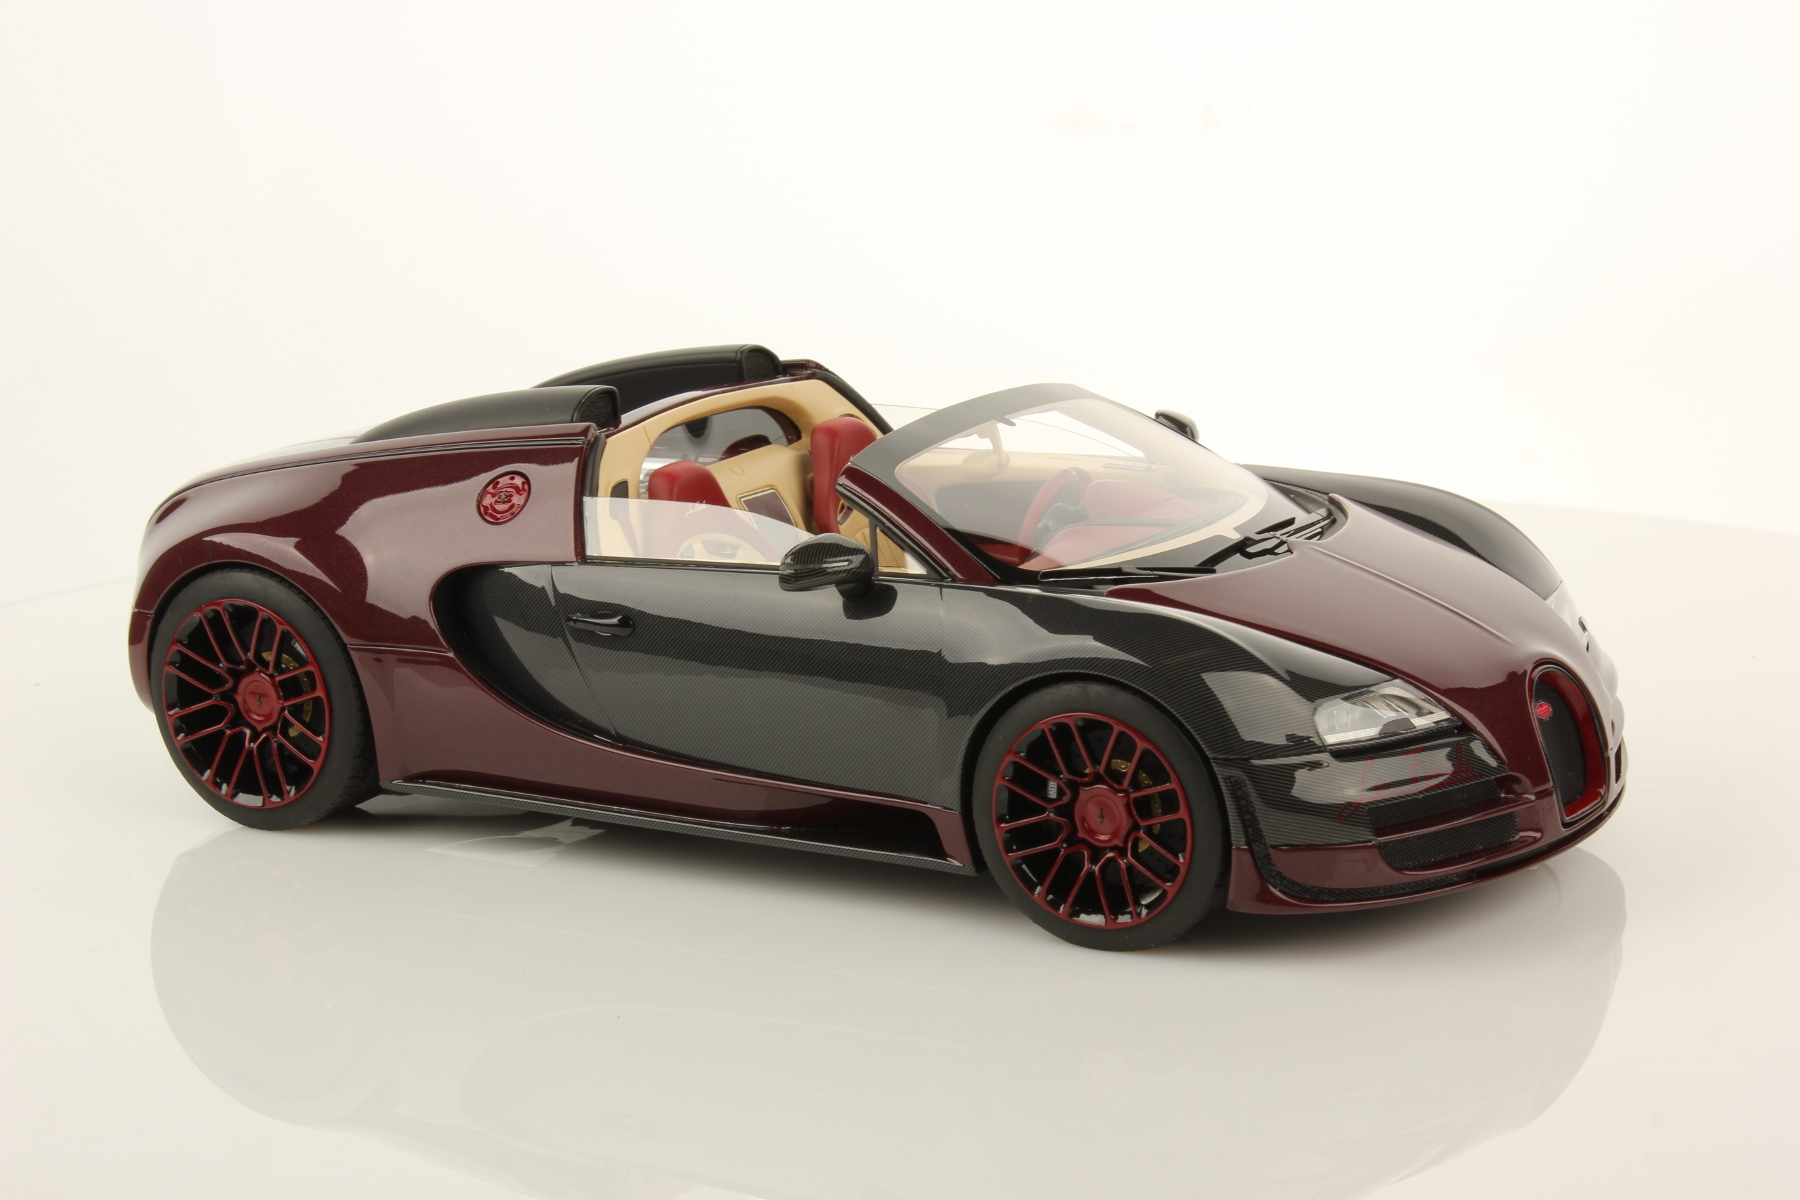 bugatti veyron 16 4 grand sport vitesse la finale 1 18 mr colle. Black Bedroom Furniture Sets. Home Design Ideas